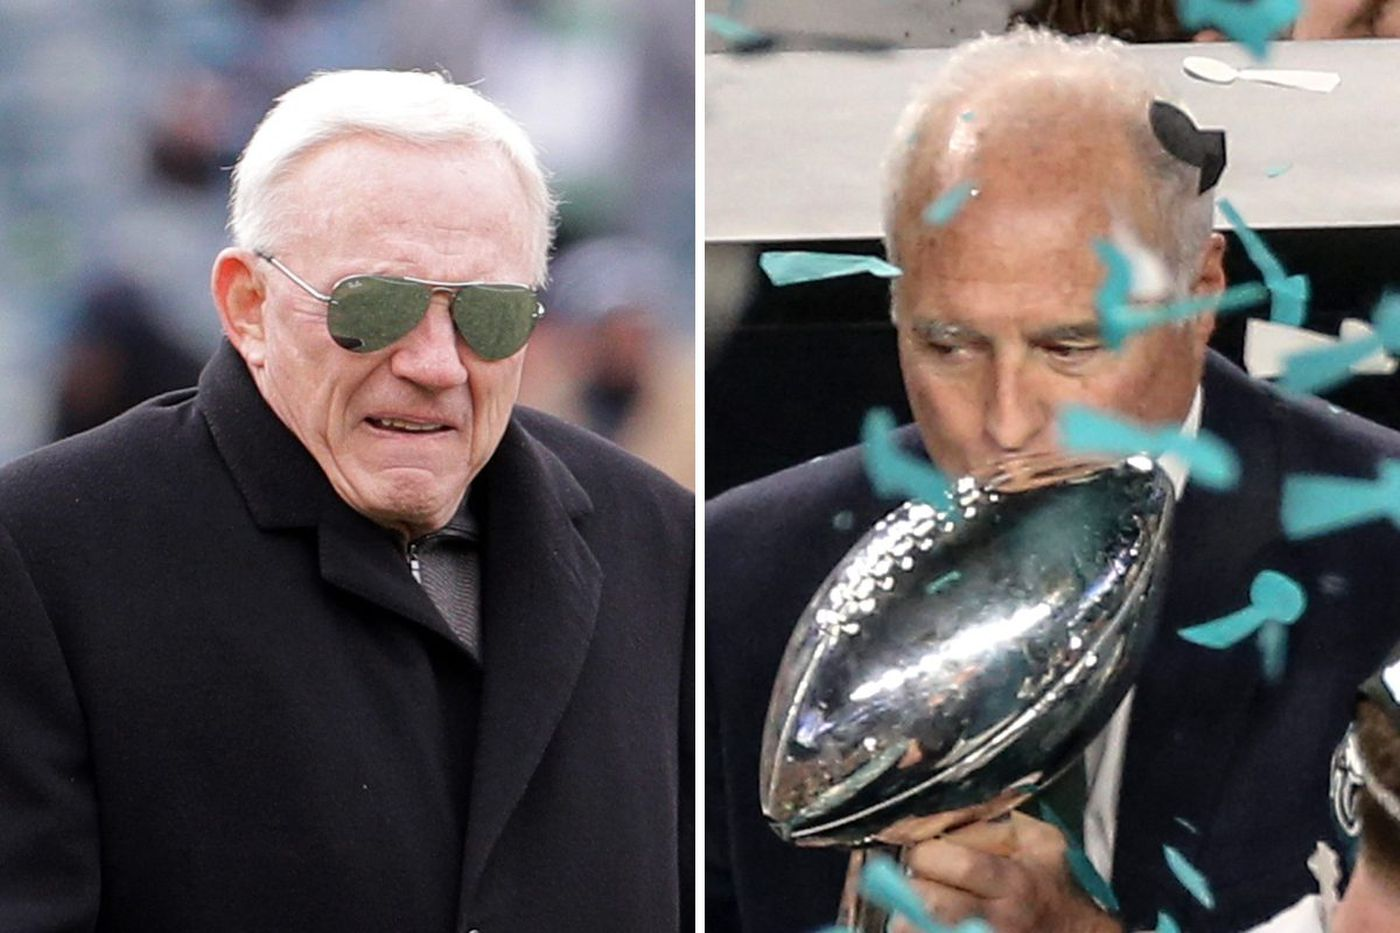 Jerry Jones is miserable about the Eagles' Super Bowl win